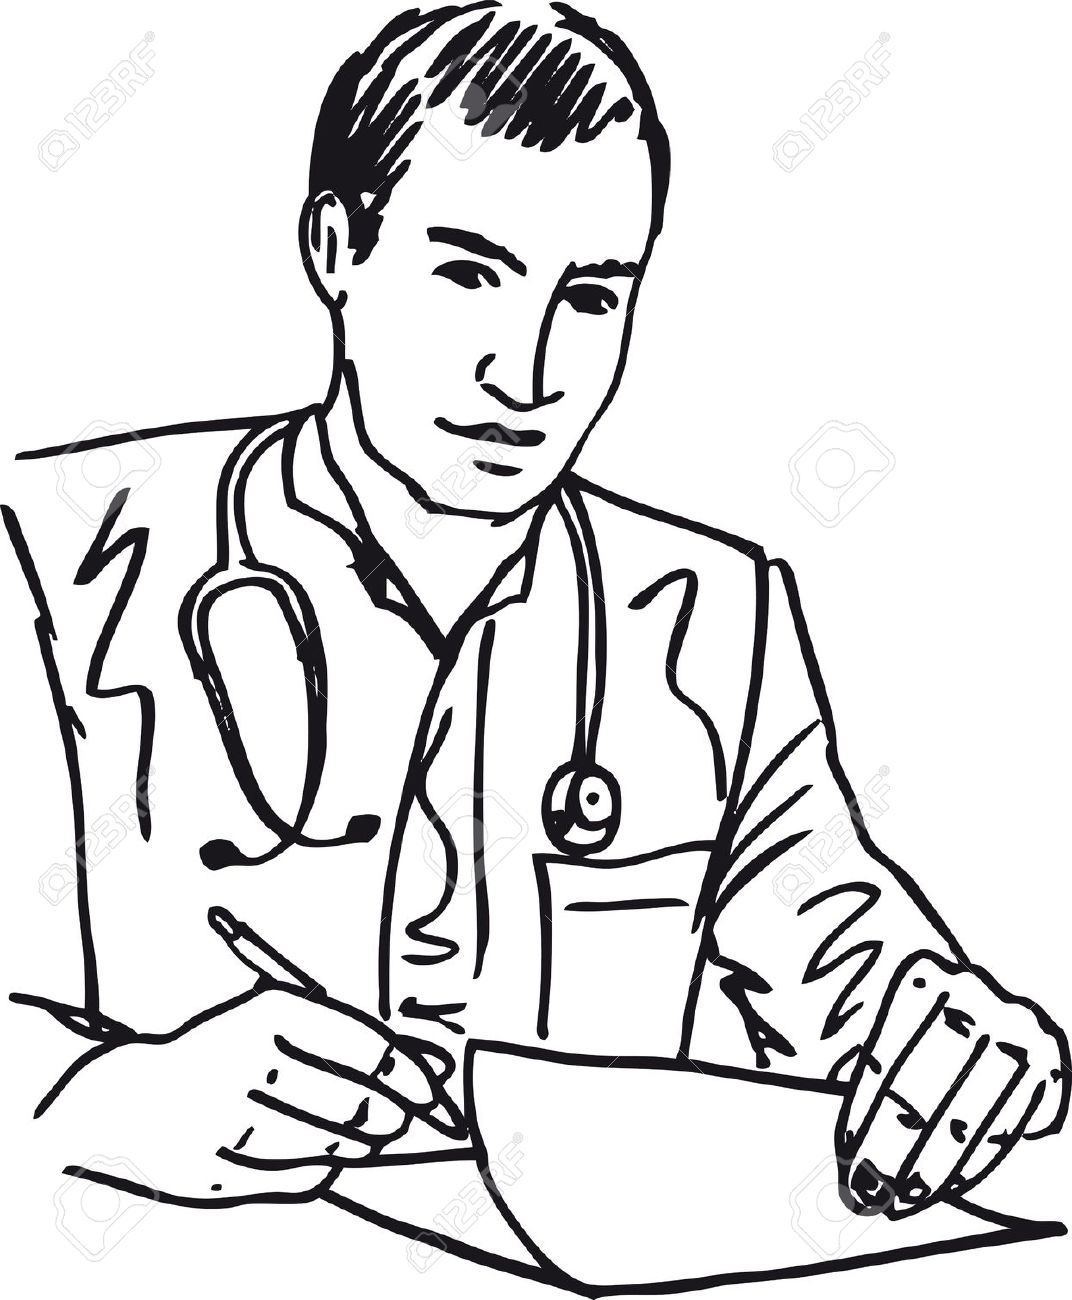 Clipart Of Doctor Black And White.